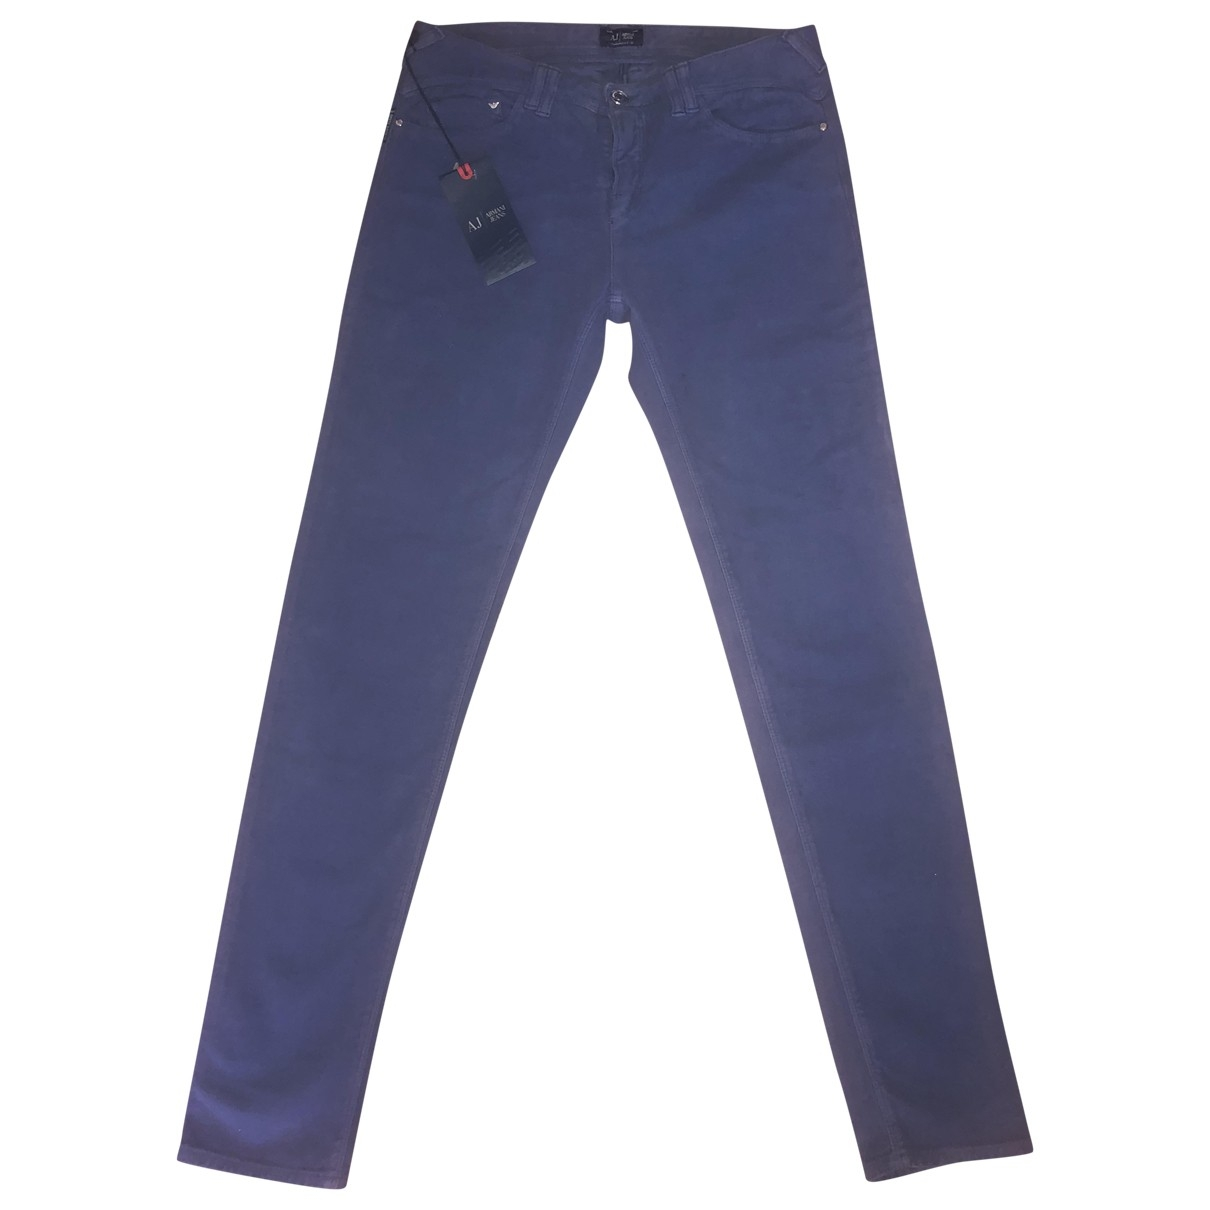 Armani Jeans \N Blue Cotton - elasthane Jeans for Women 29 US